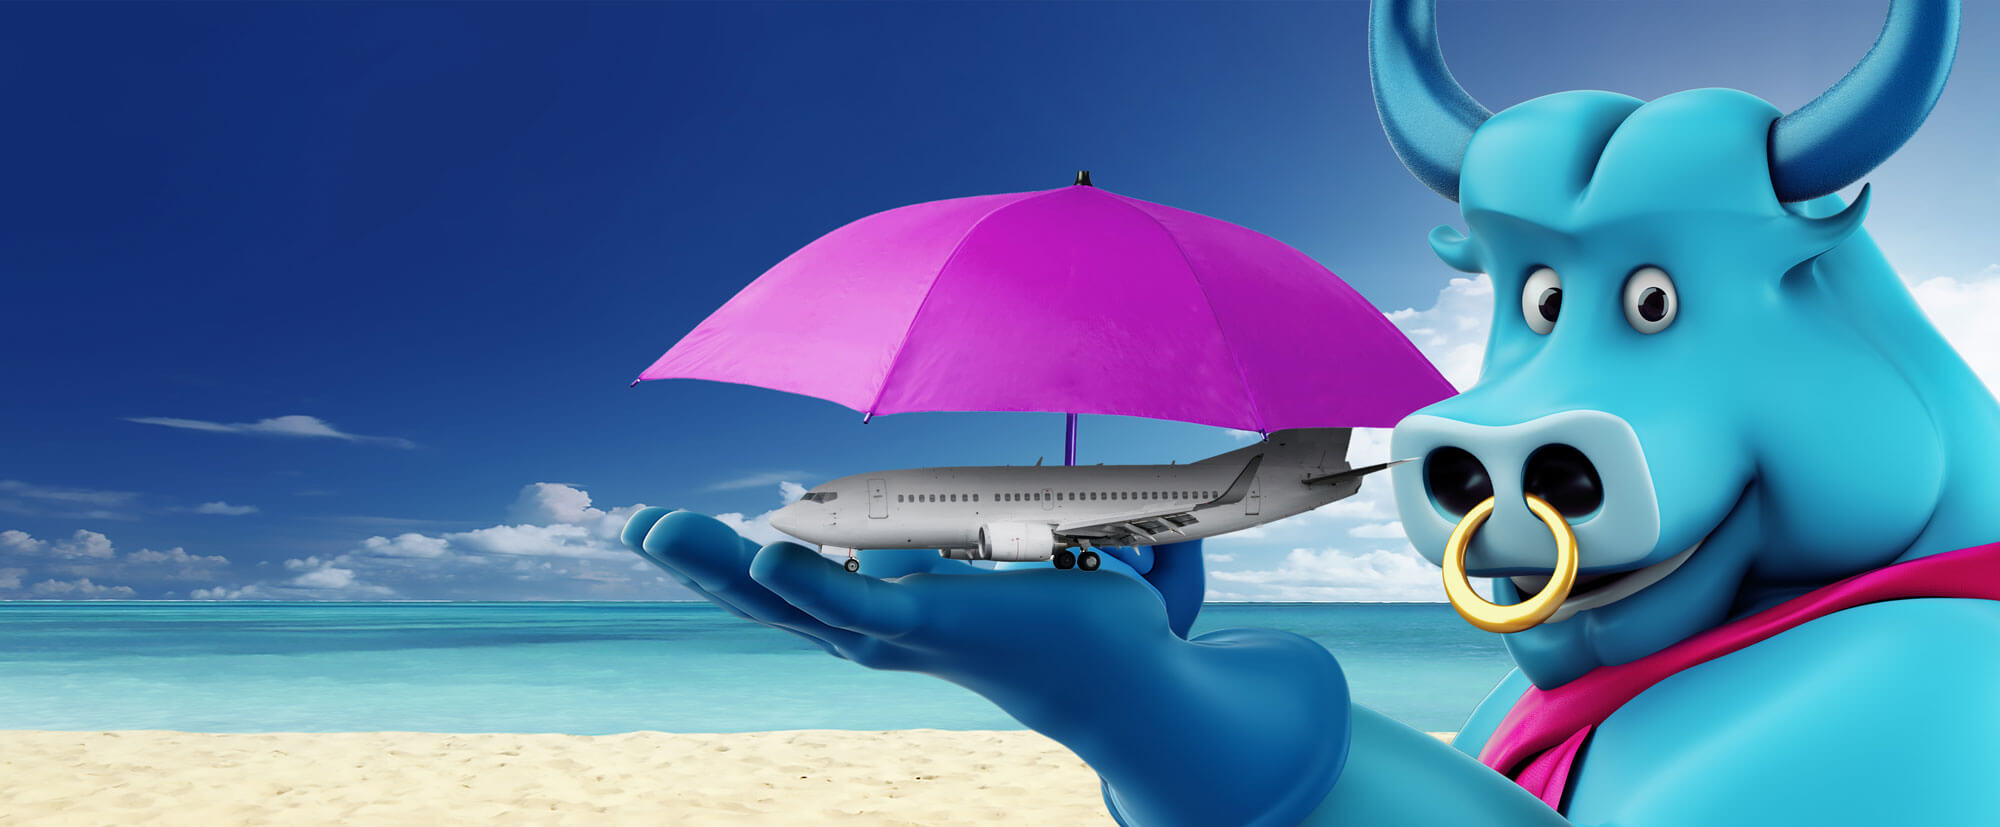 For All Your Travel Insurance Needs